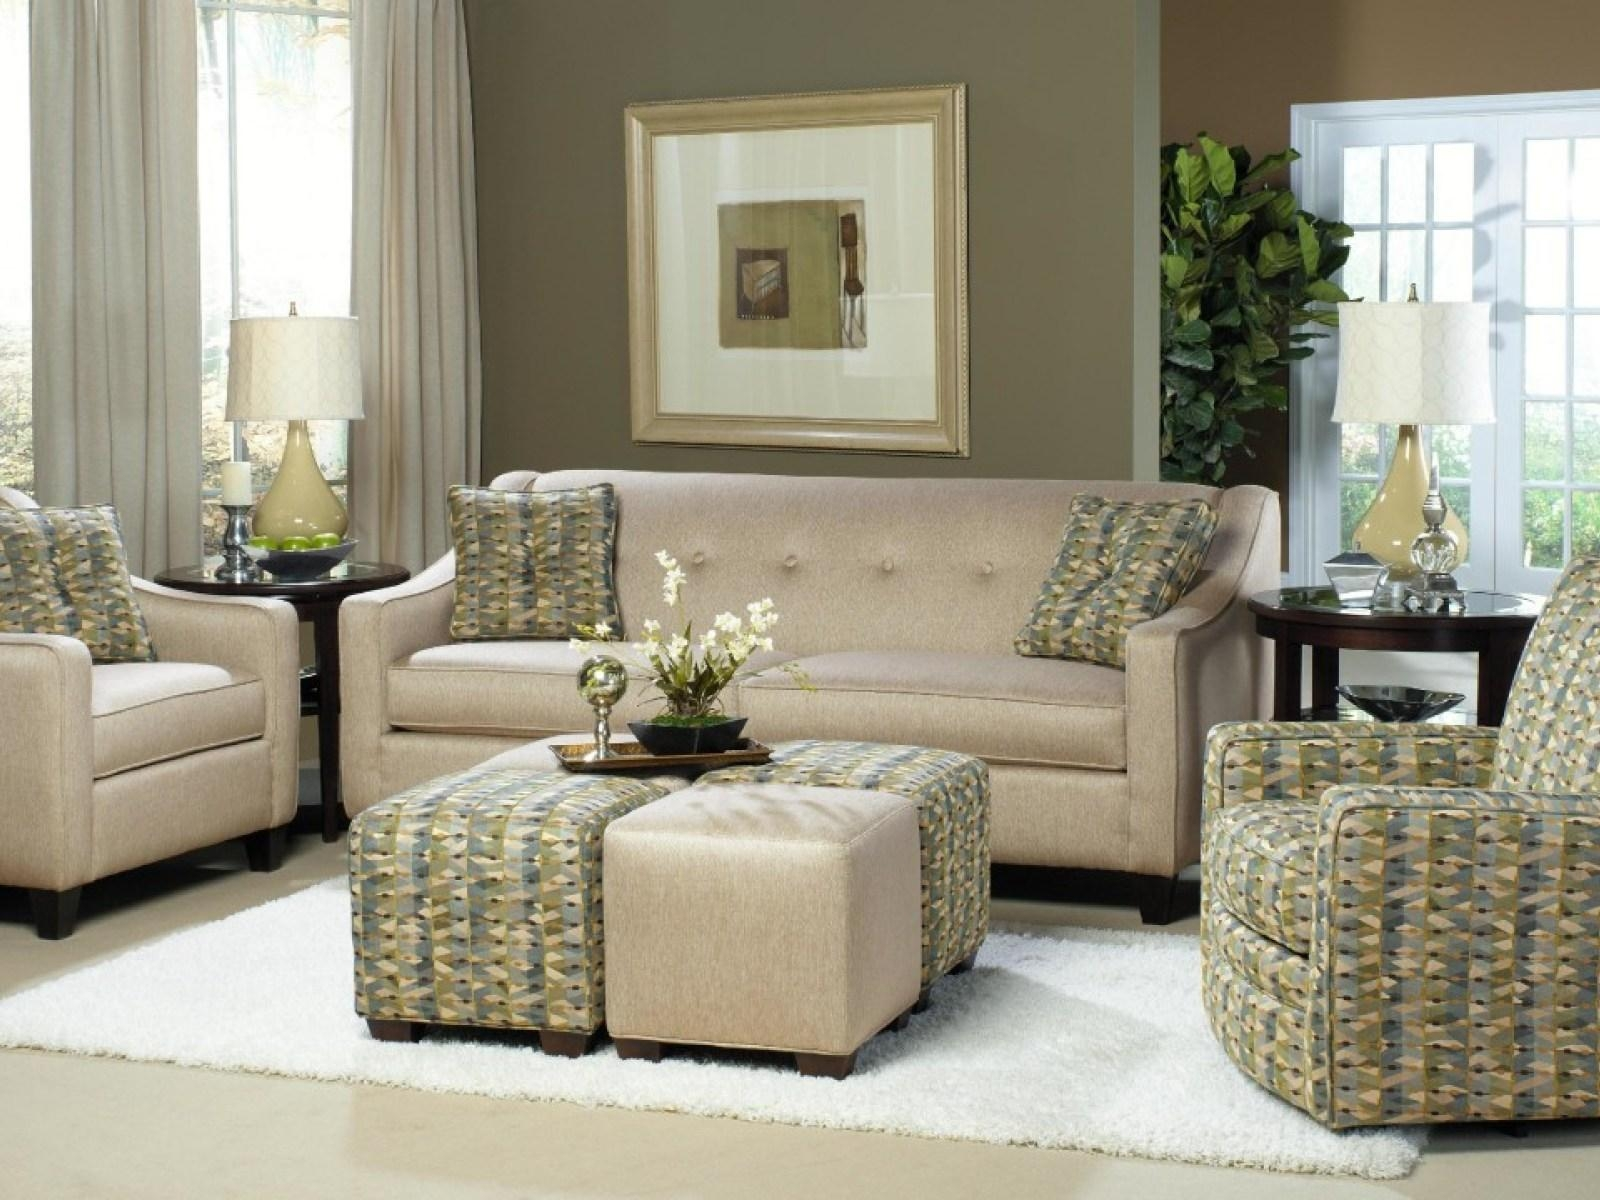 asian sofas nice bastia sofascore 20 best collection of sofa ideas